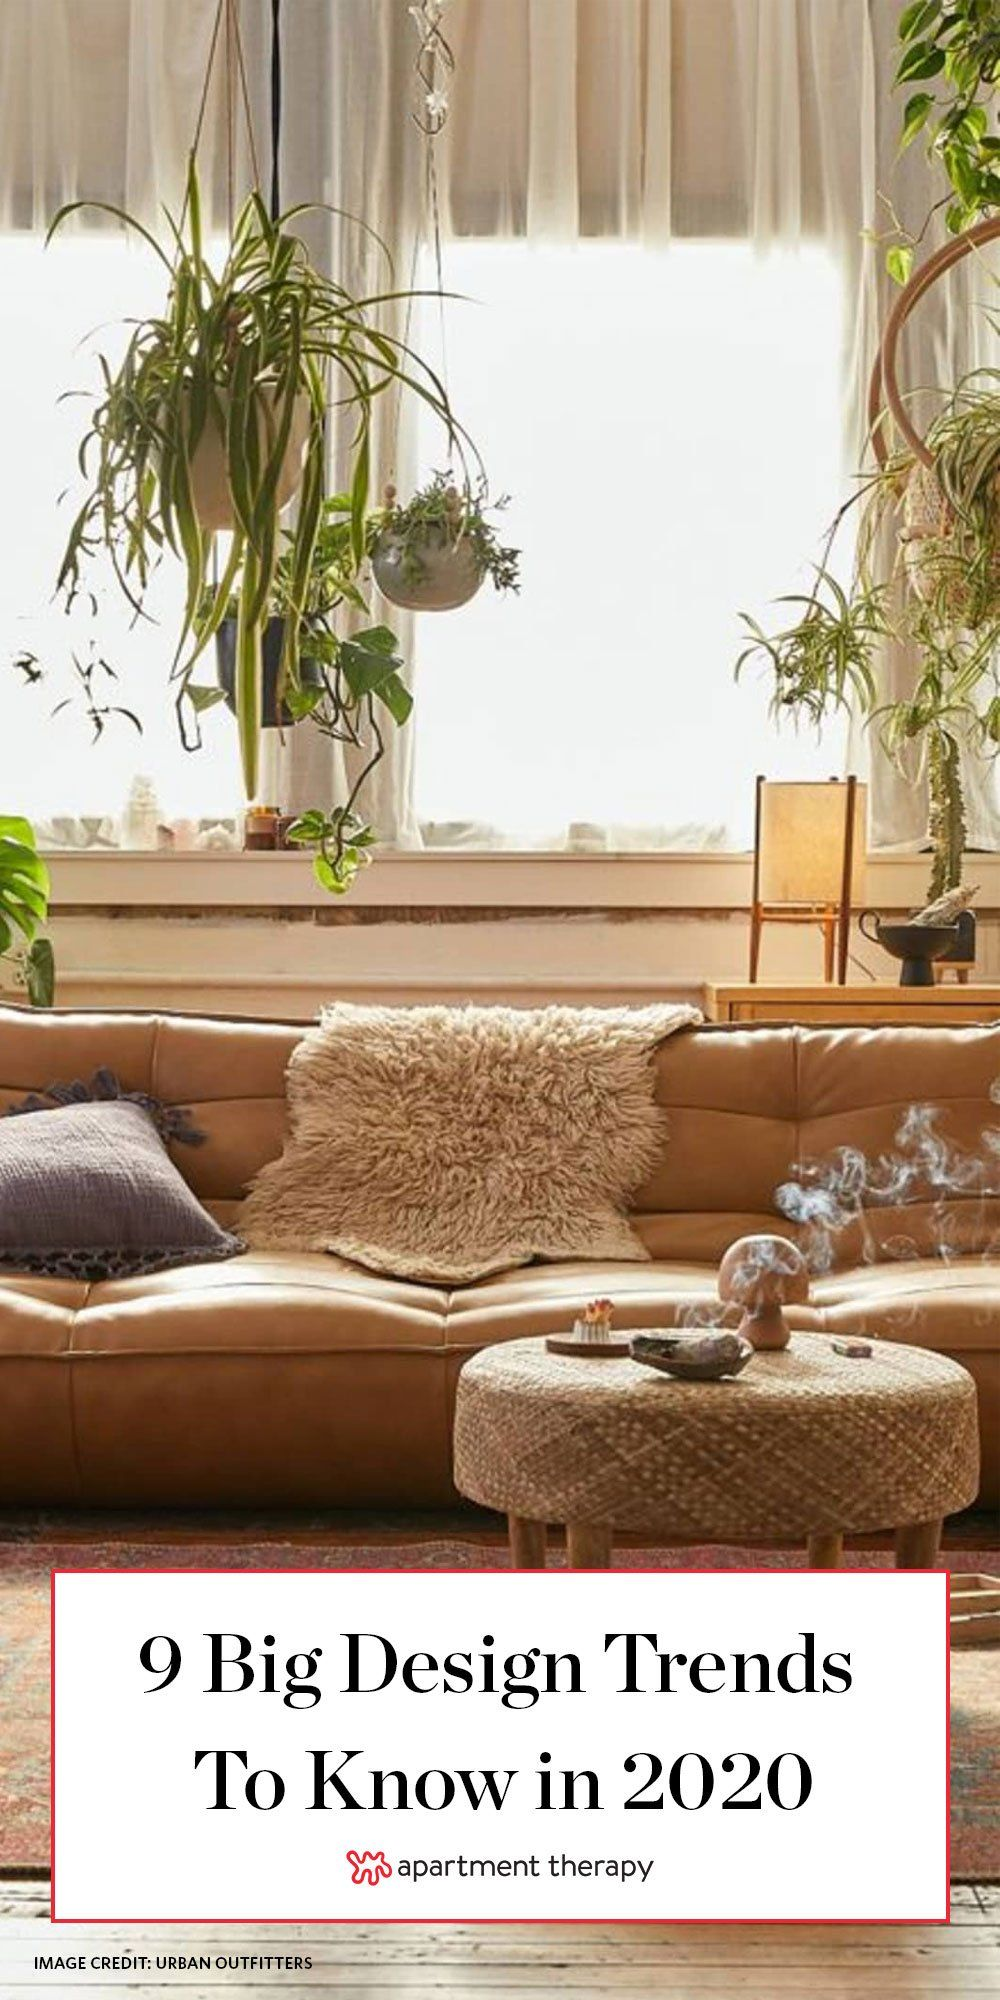 2019 Vs 2020 Design How The Biggest Home Decor Trends Of The